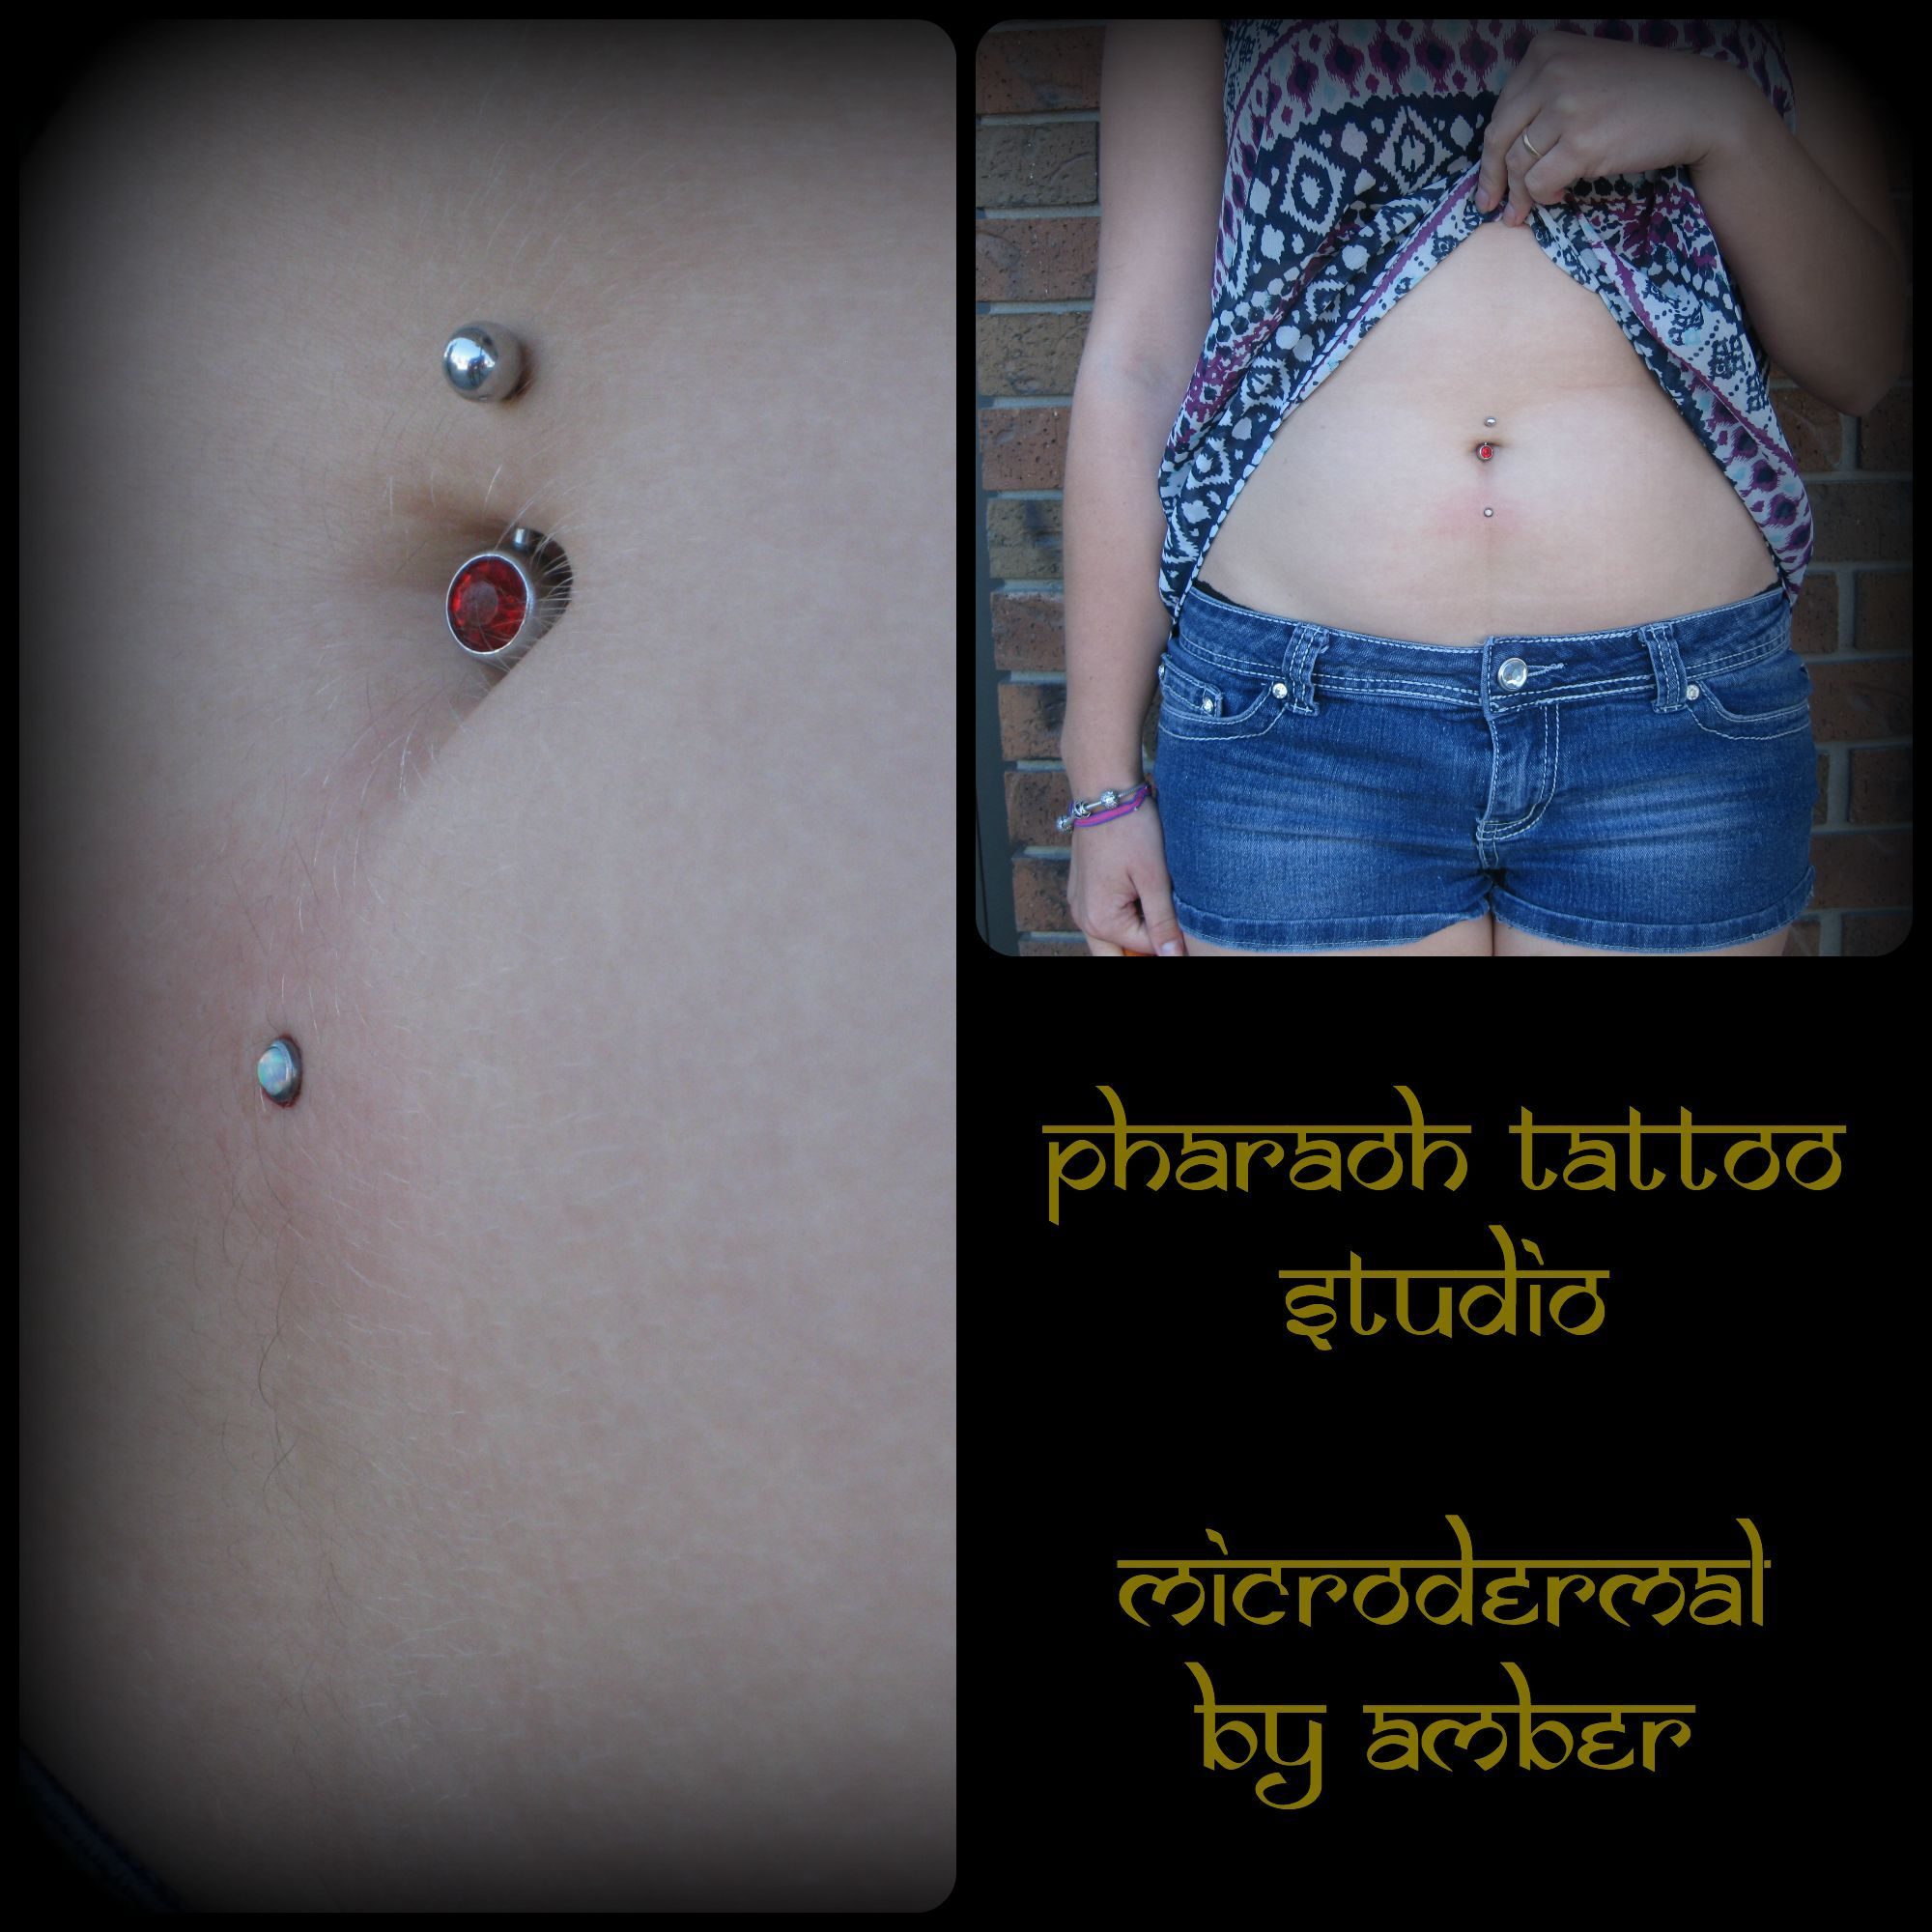 Surface piercing under belly button  Pin by Pharaoh Tattoo Studio on Piercings and Microdermals by Amber